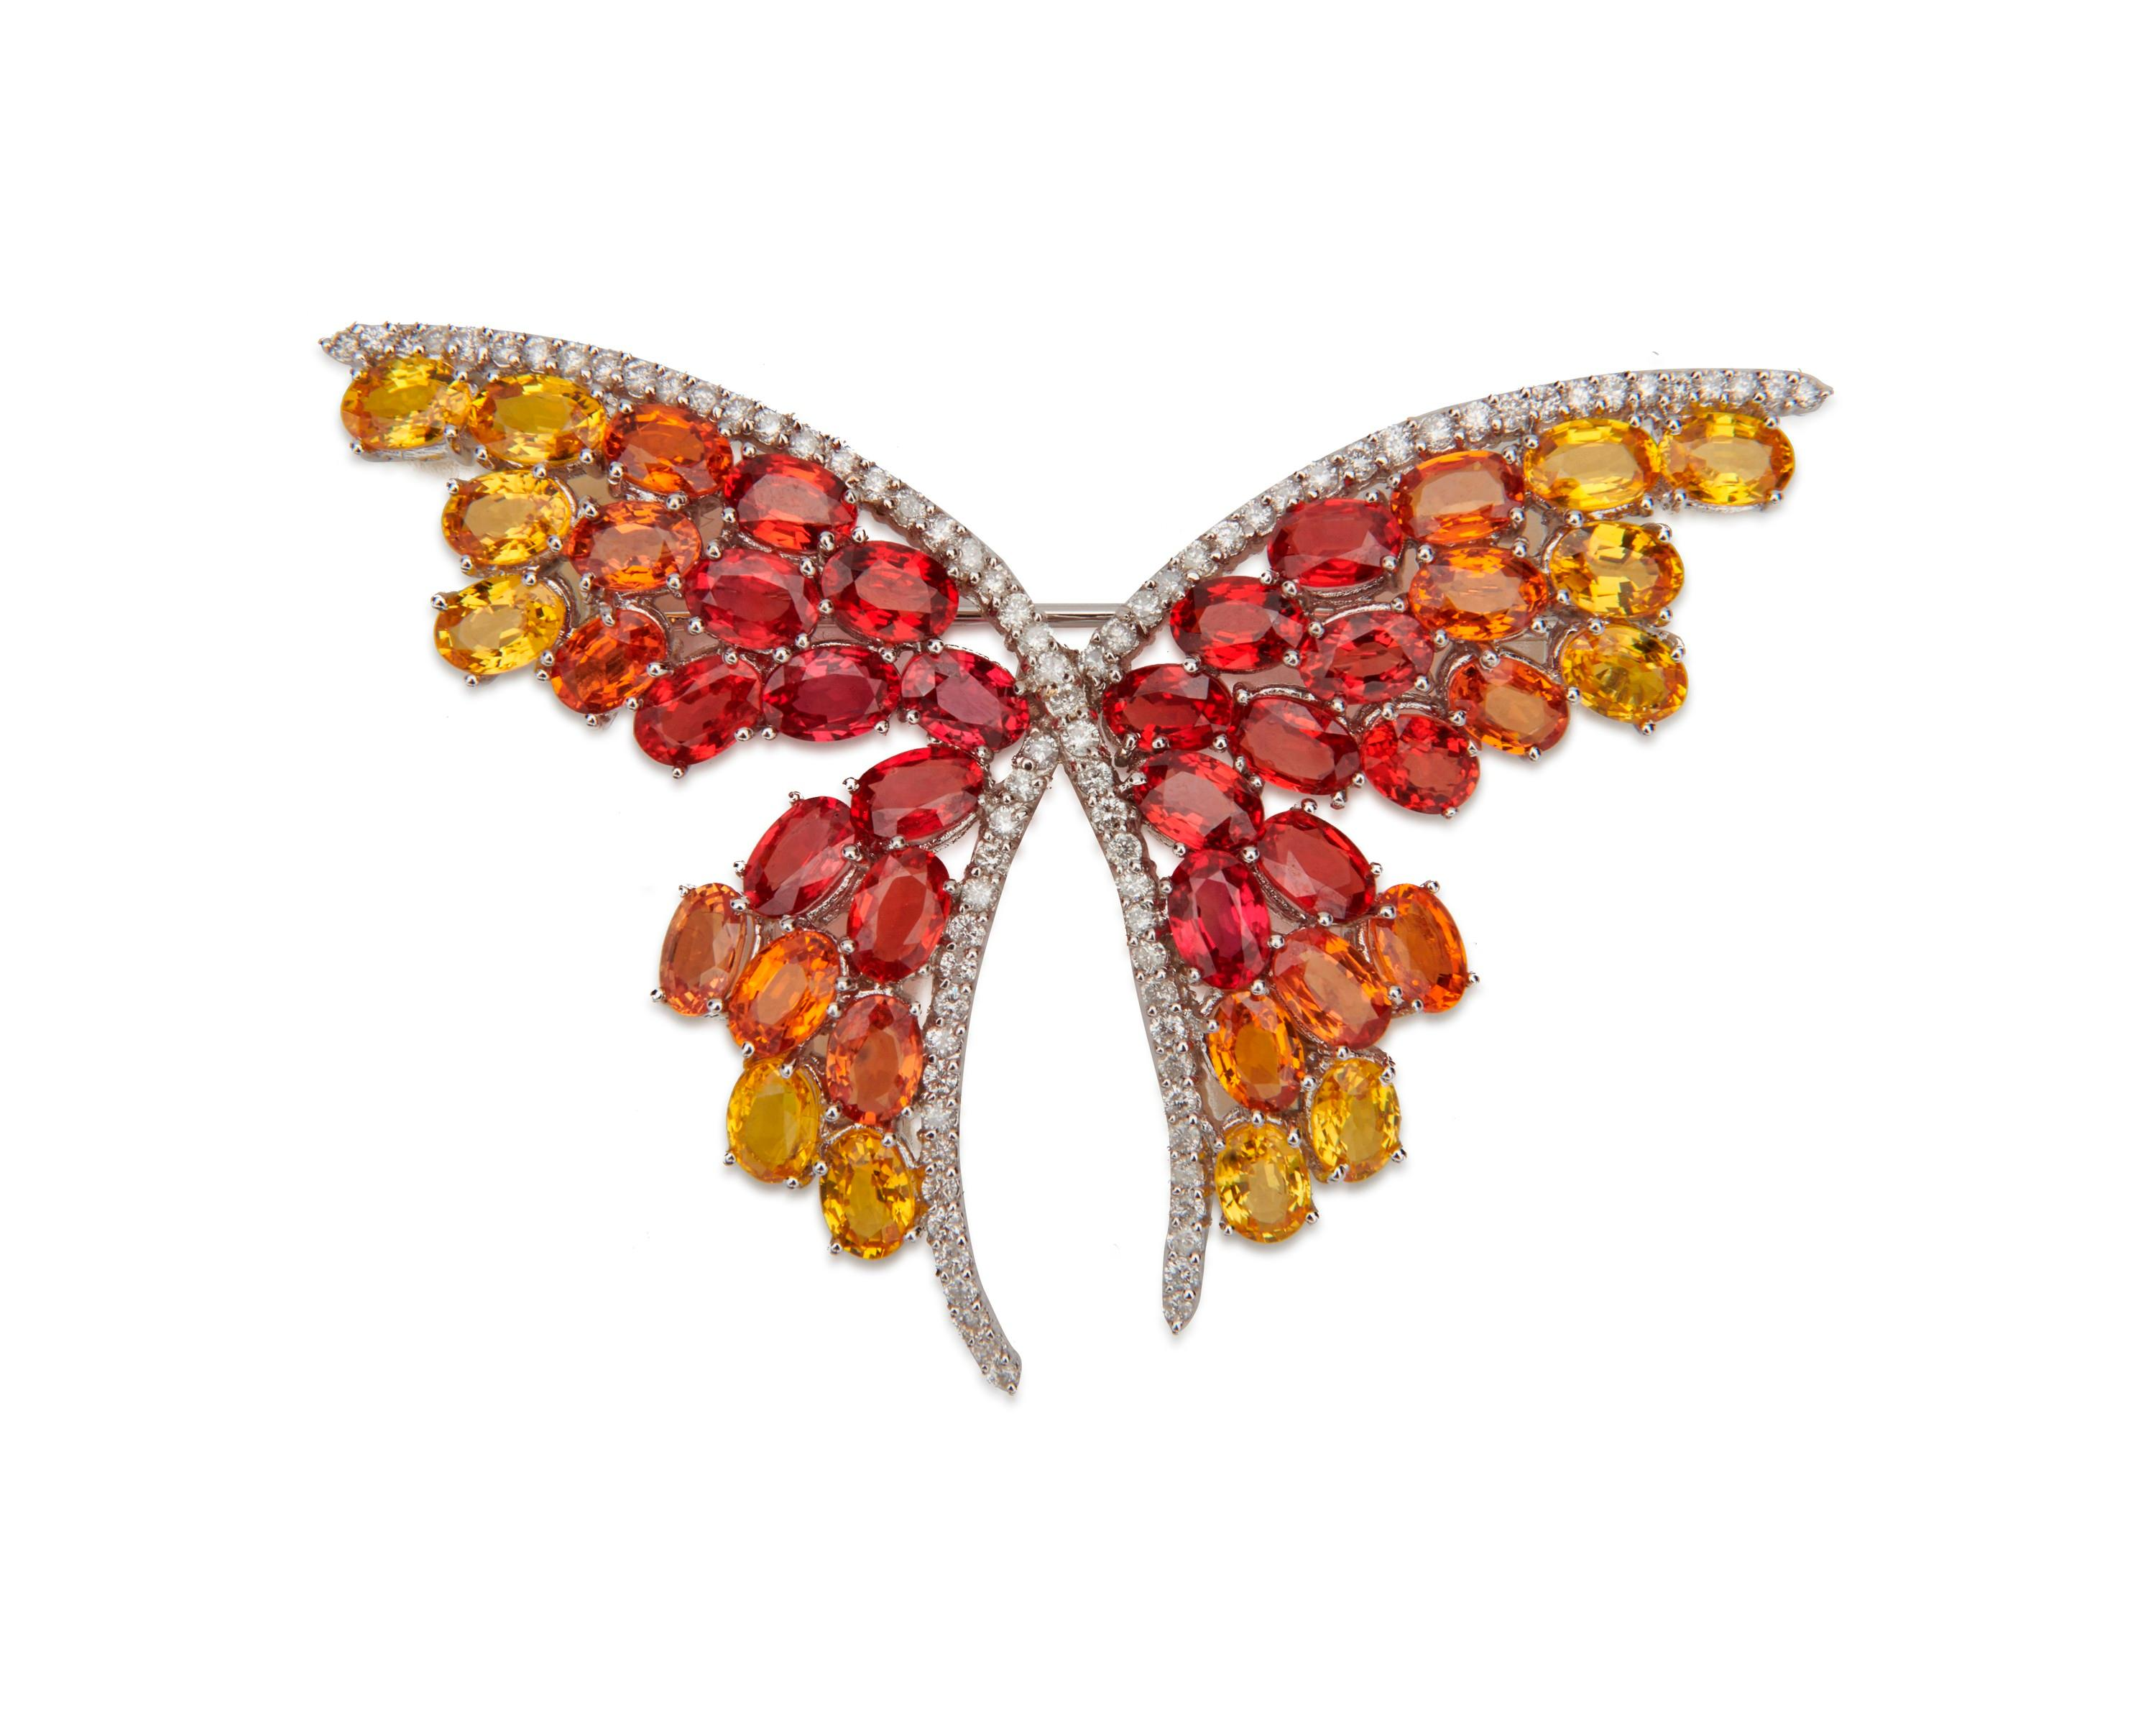 18K Gold, Diamond, Sapphire, and Ruby Brooch